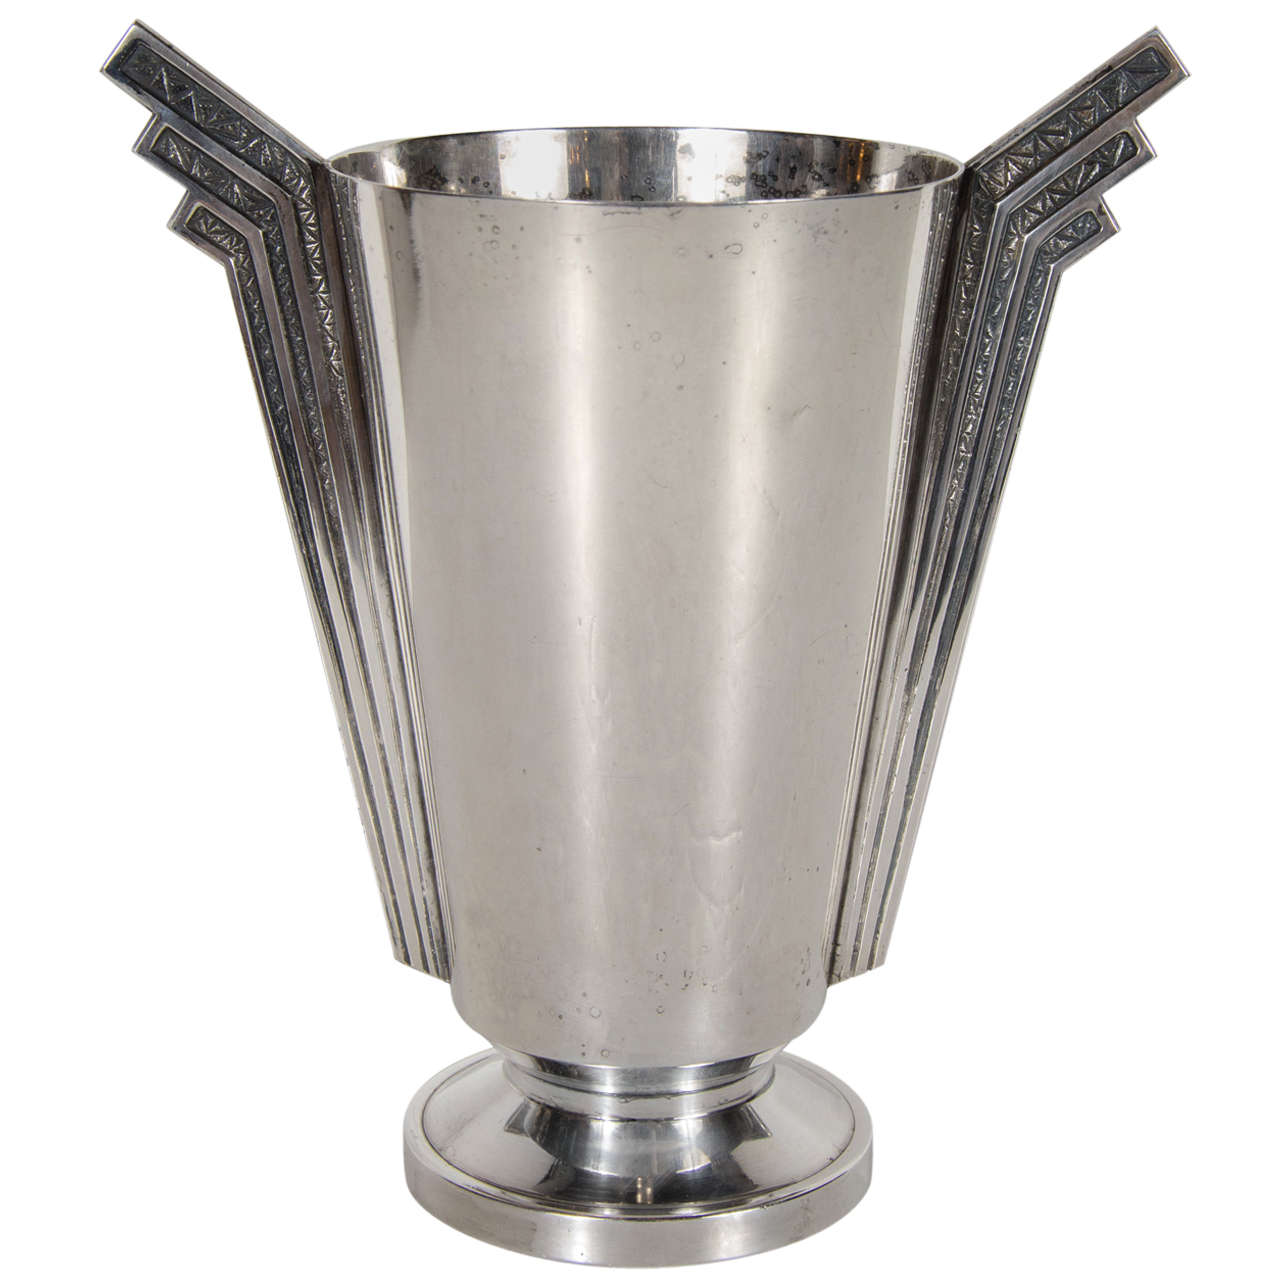 stunning art deco skyscraper style silver plate vase at 1stdibs. Black Bedroom Furniture Sets. Home Design Ideas